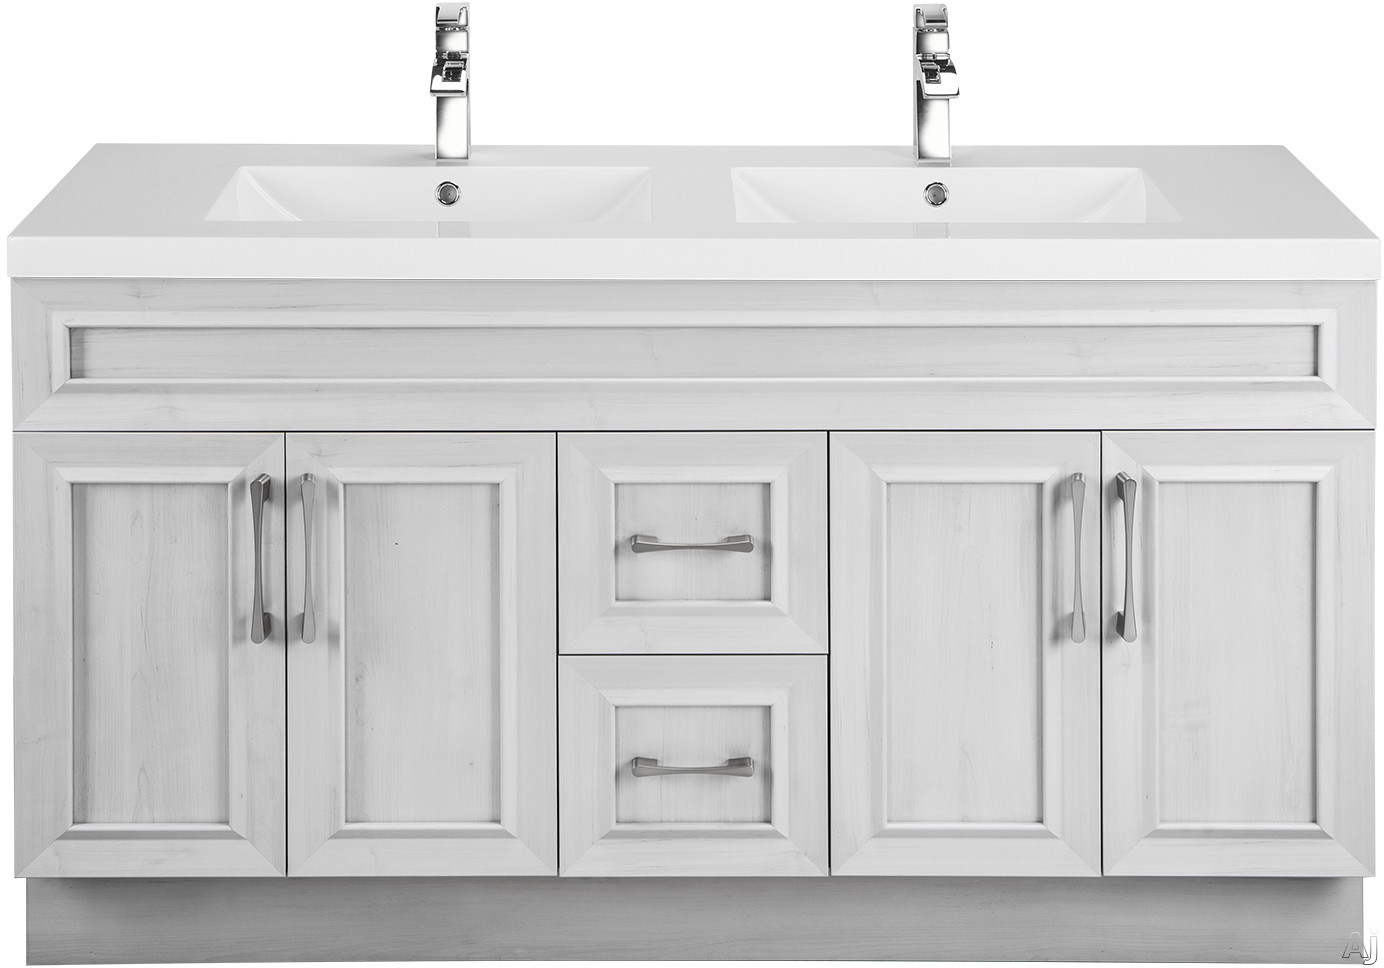 Cutler Kitchen & Bath Classic CCMCTR60DBT 60 Inch Freestanding Double Bowl Vanity with 2 Soft Close Drawers, Countertop and Sink and Handles Included